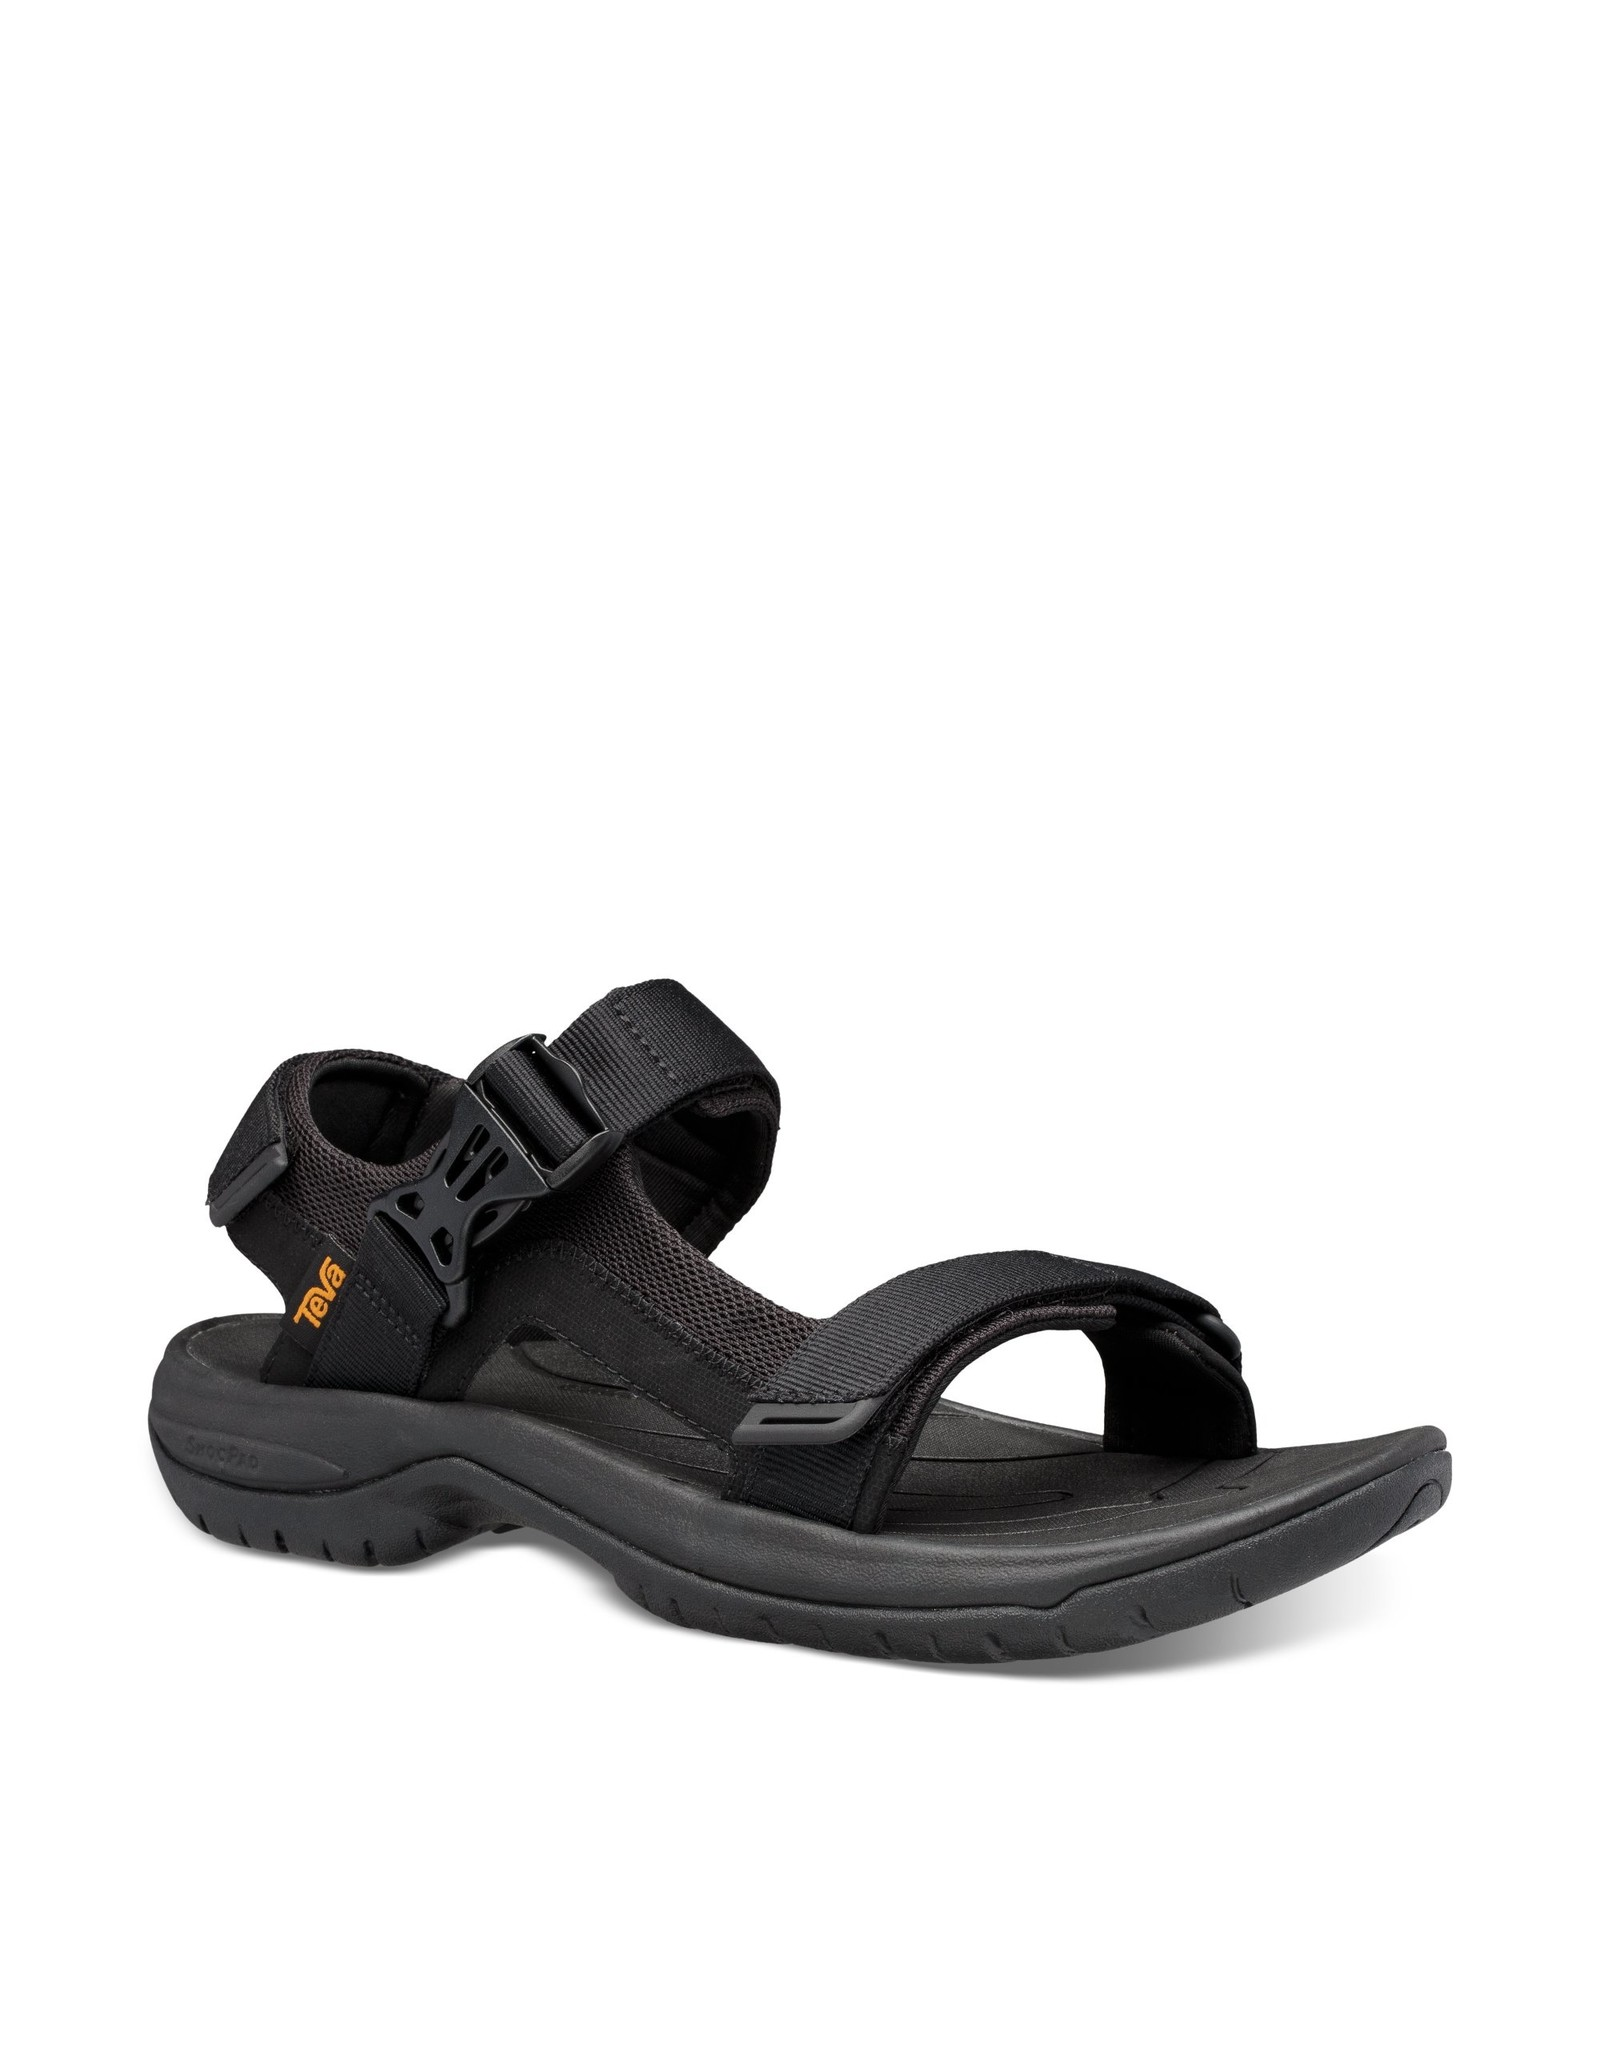 Teva Men's Tanaway  - 20ps